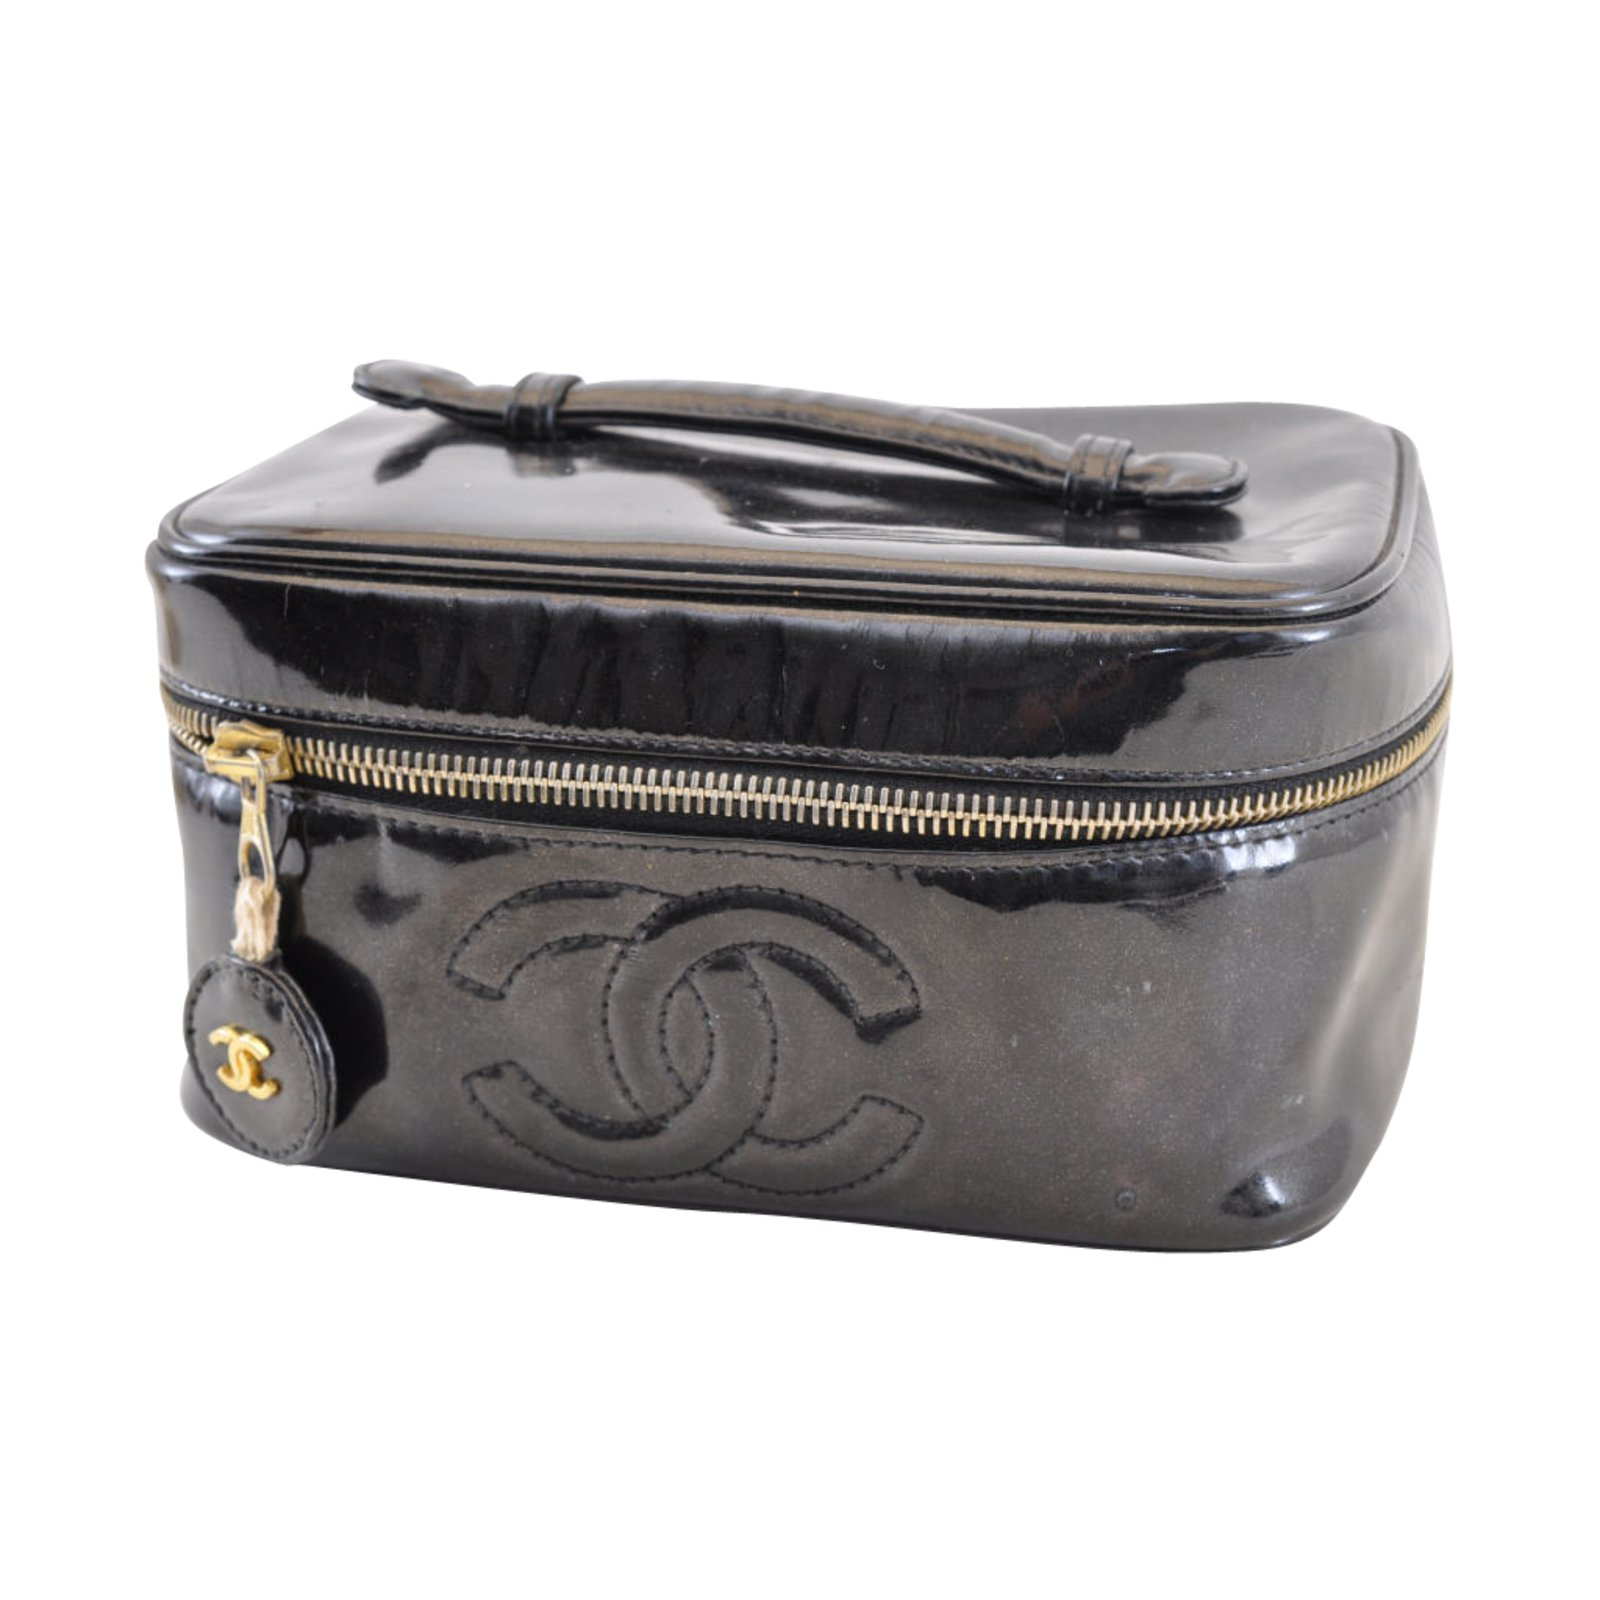 981cf7cc1ef9f0 Chanel Vanity Cosmetic Pouch Handbags Patent leather Black ref.104668